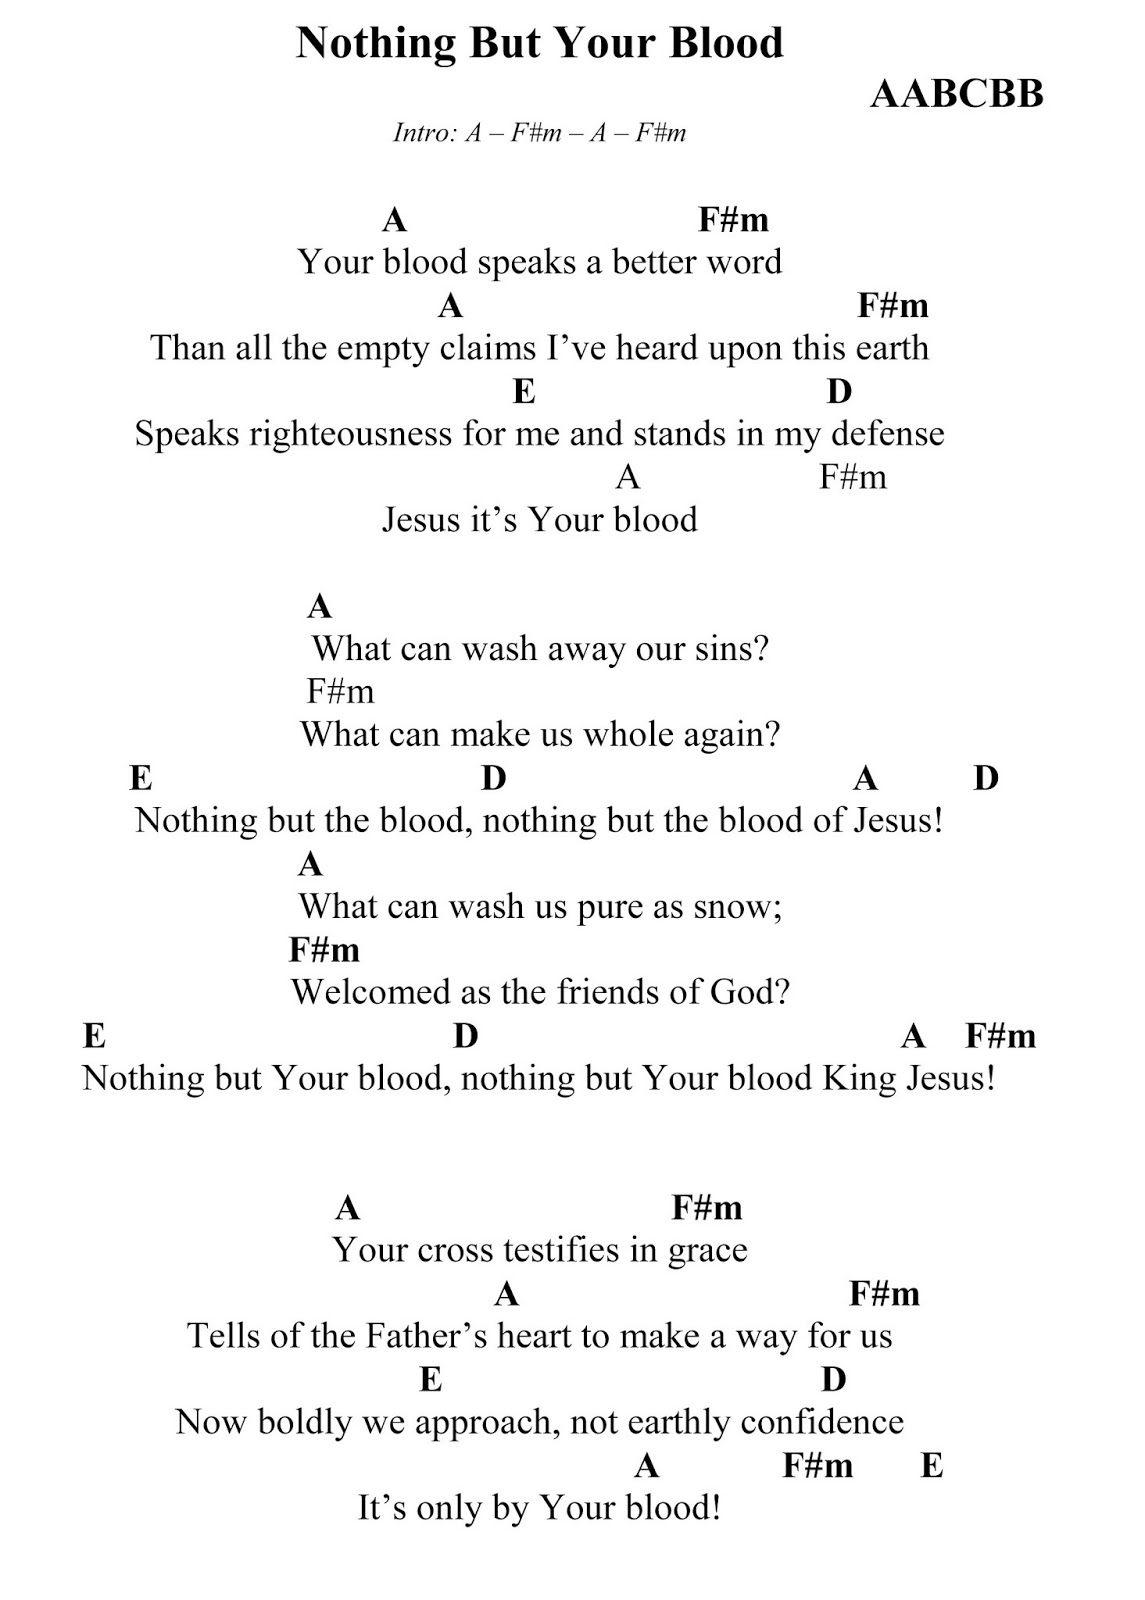 Enriched affections sunday singables nothing but the blood you might also find this song under the title nothing but your blood this song works well before communion or after a message about the cross hexwebz Image collections